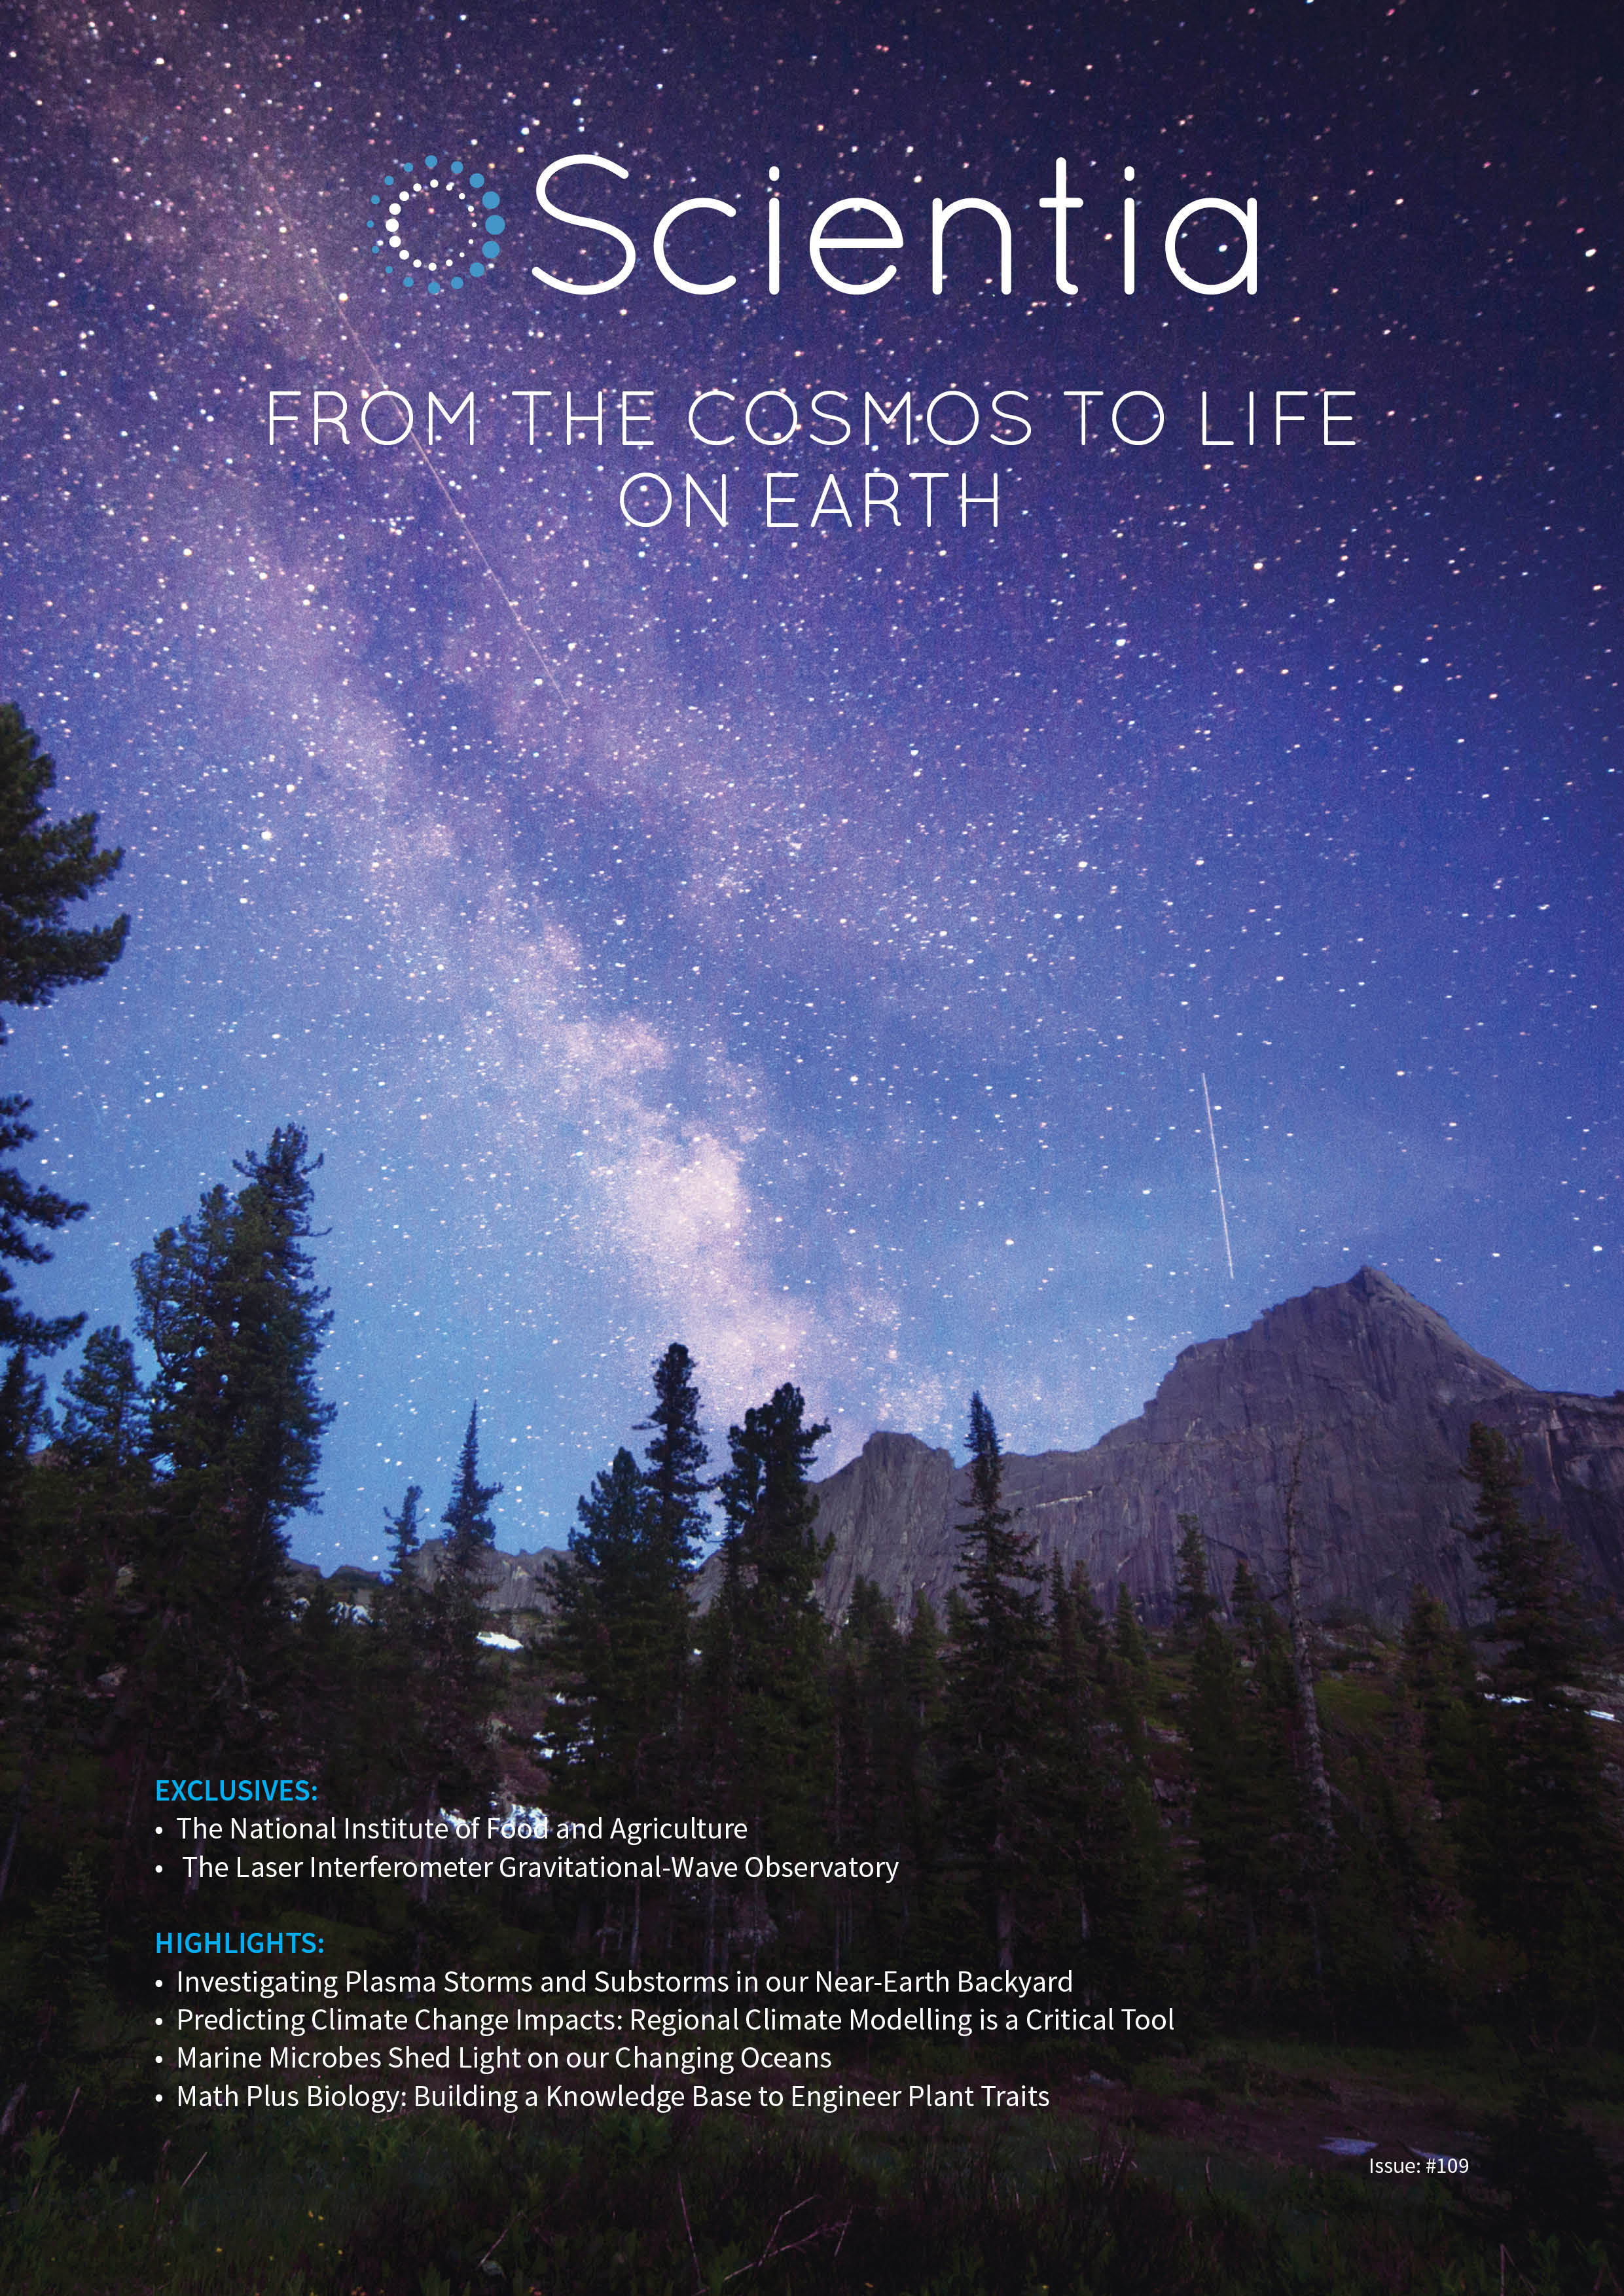 FROM THE COSMOS TO LIFE ON EARTH